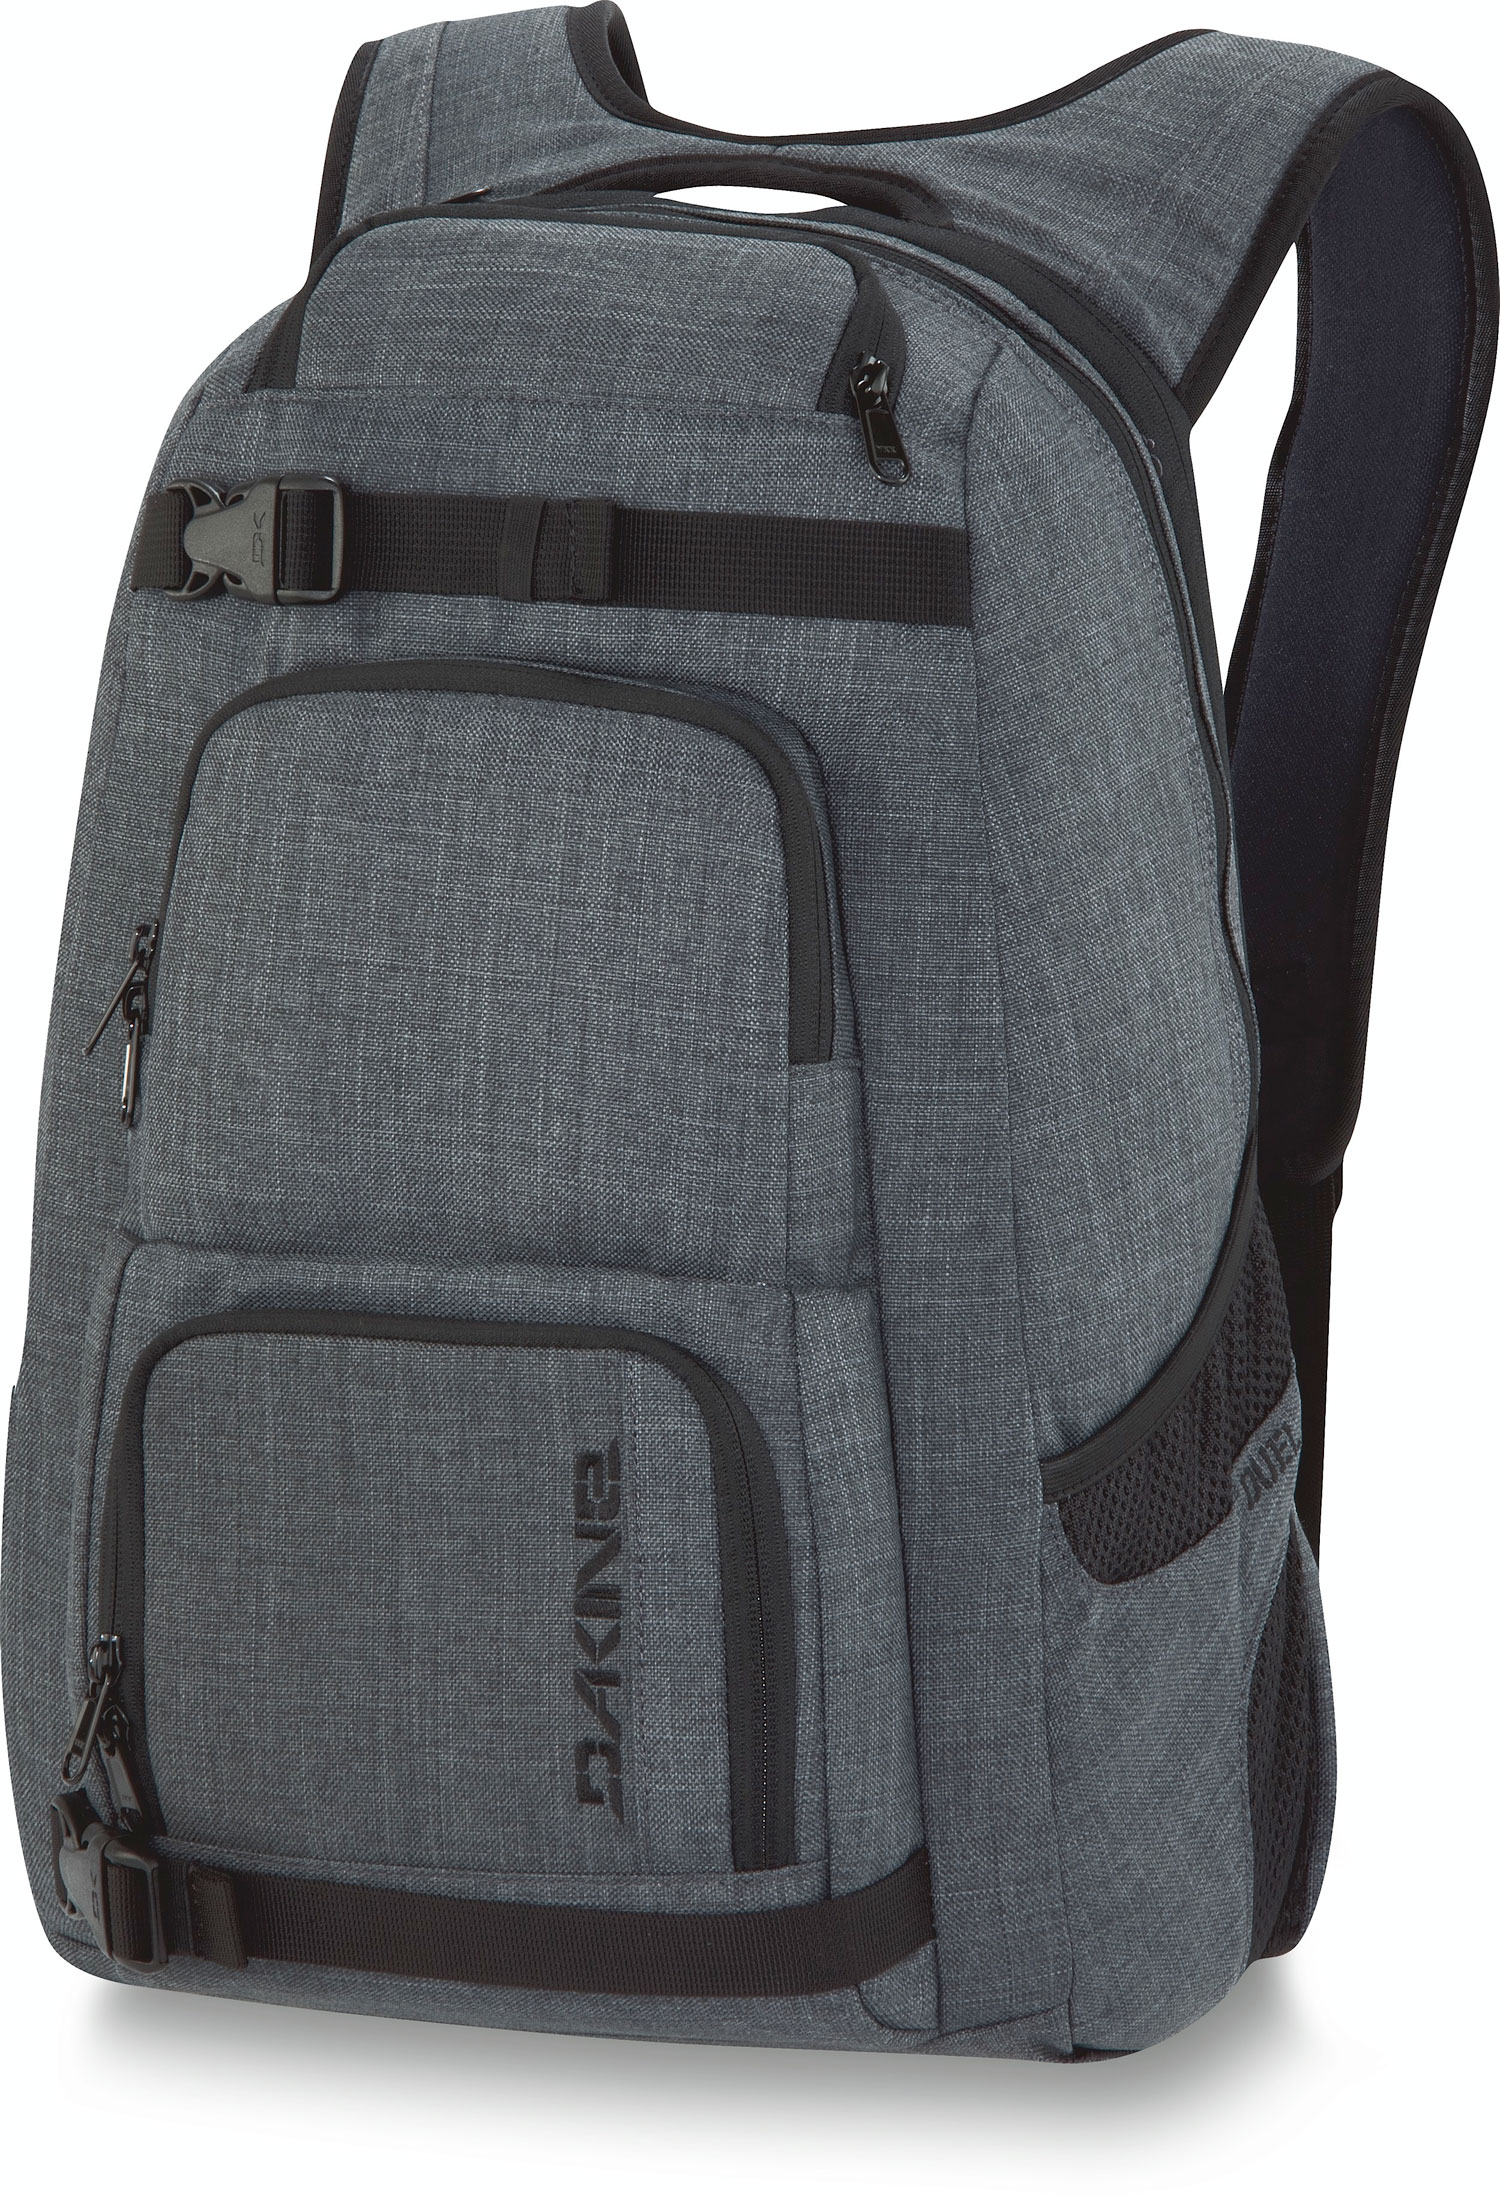 "Surf Key Features of the Dakine Duel 26L Backpack: 1600 cu. in. [ 26L ] 19 x 12 x 9"" [ 48 x 30 x 23cm ] 600D Polyester 420D Nylon Dobby ( Black ) Padded sleeve fits most 14"" laptops Skate carry straps insulated cooler pocket Organizer pocket Fleece lined sunglass pocket Mesh side pockets - $70.00"